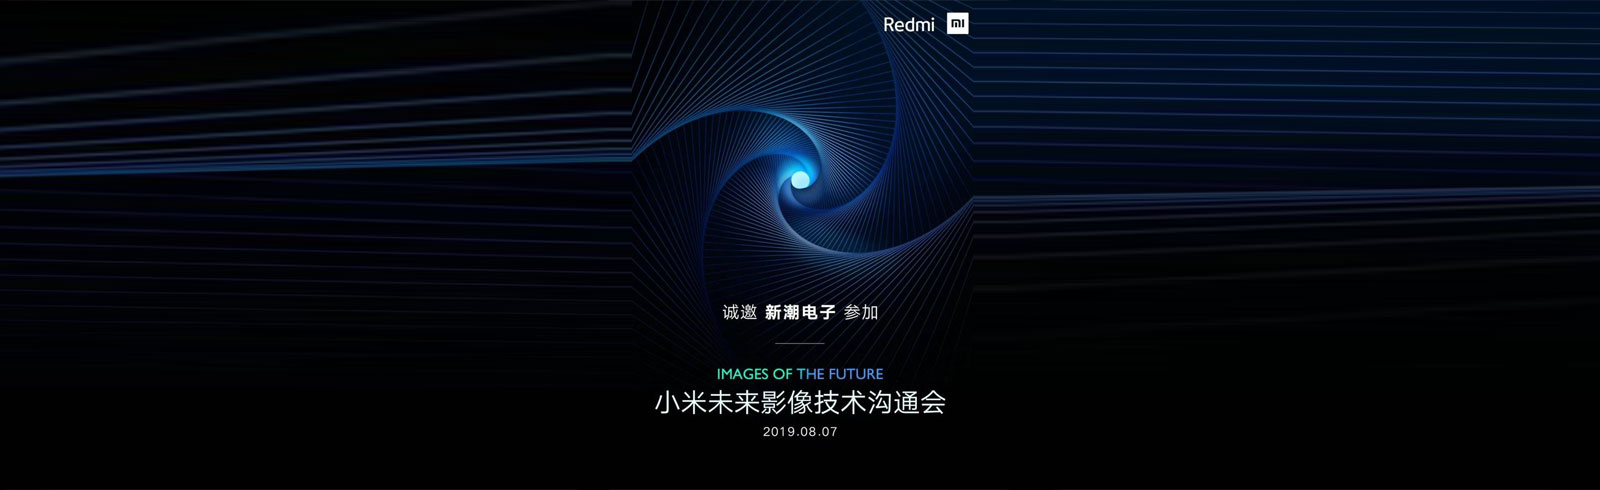 Xiaomi will unveil a Redmi smartphone with a 64MP camera on August 7th